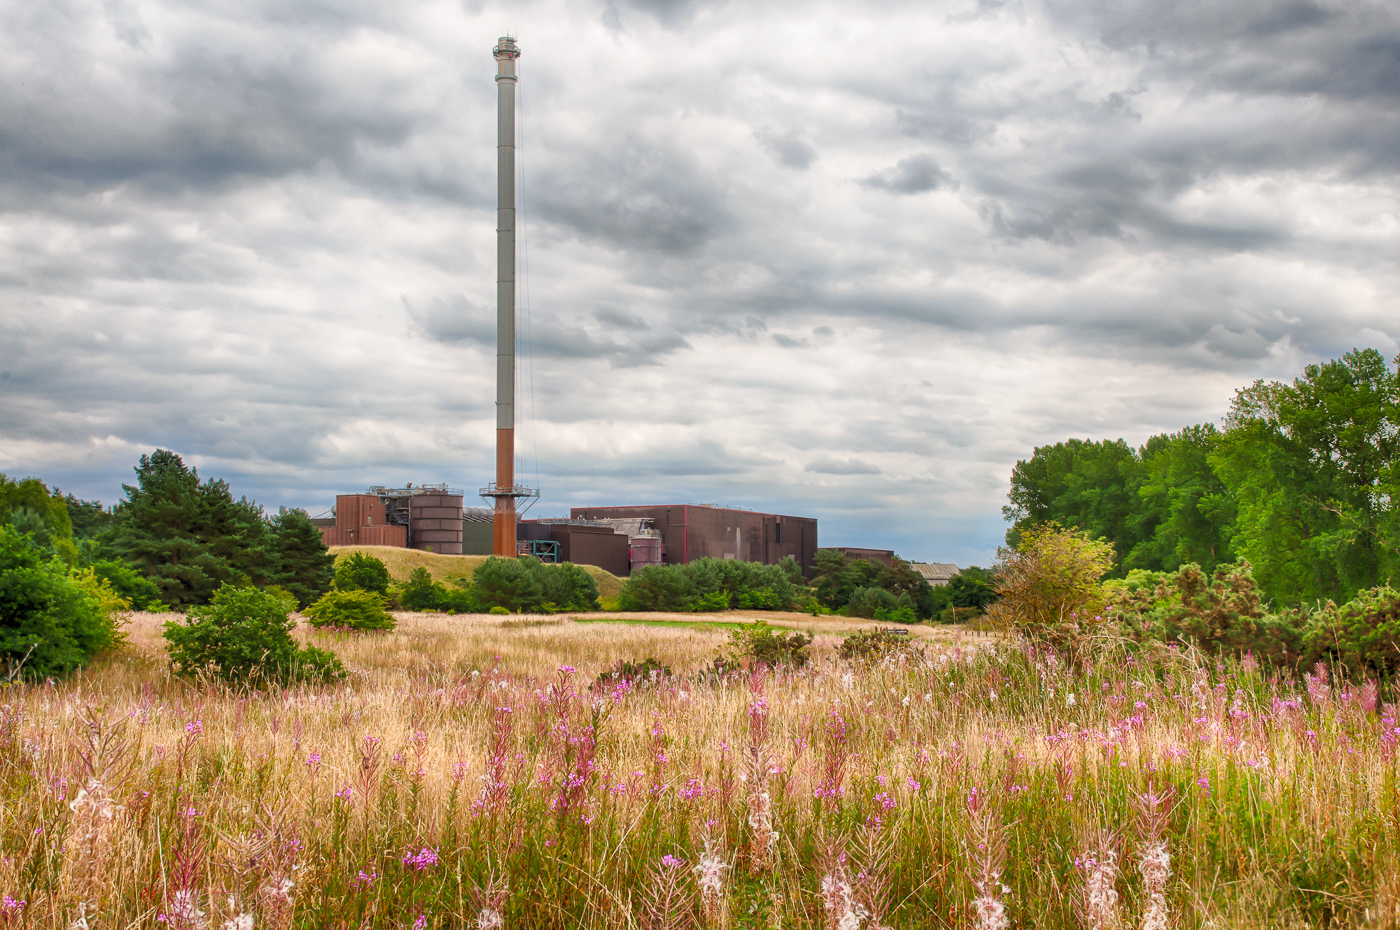 Thetford Power Station